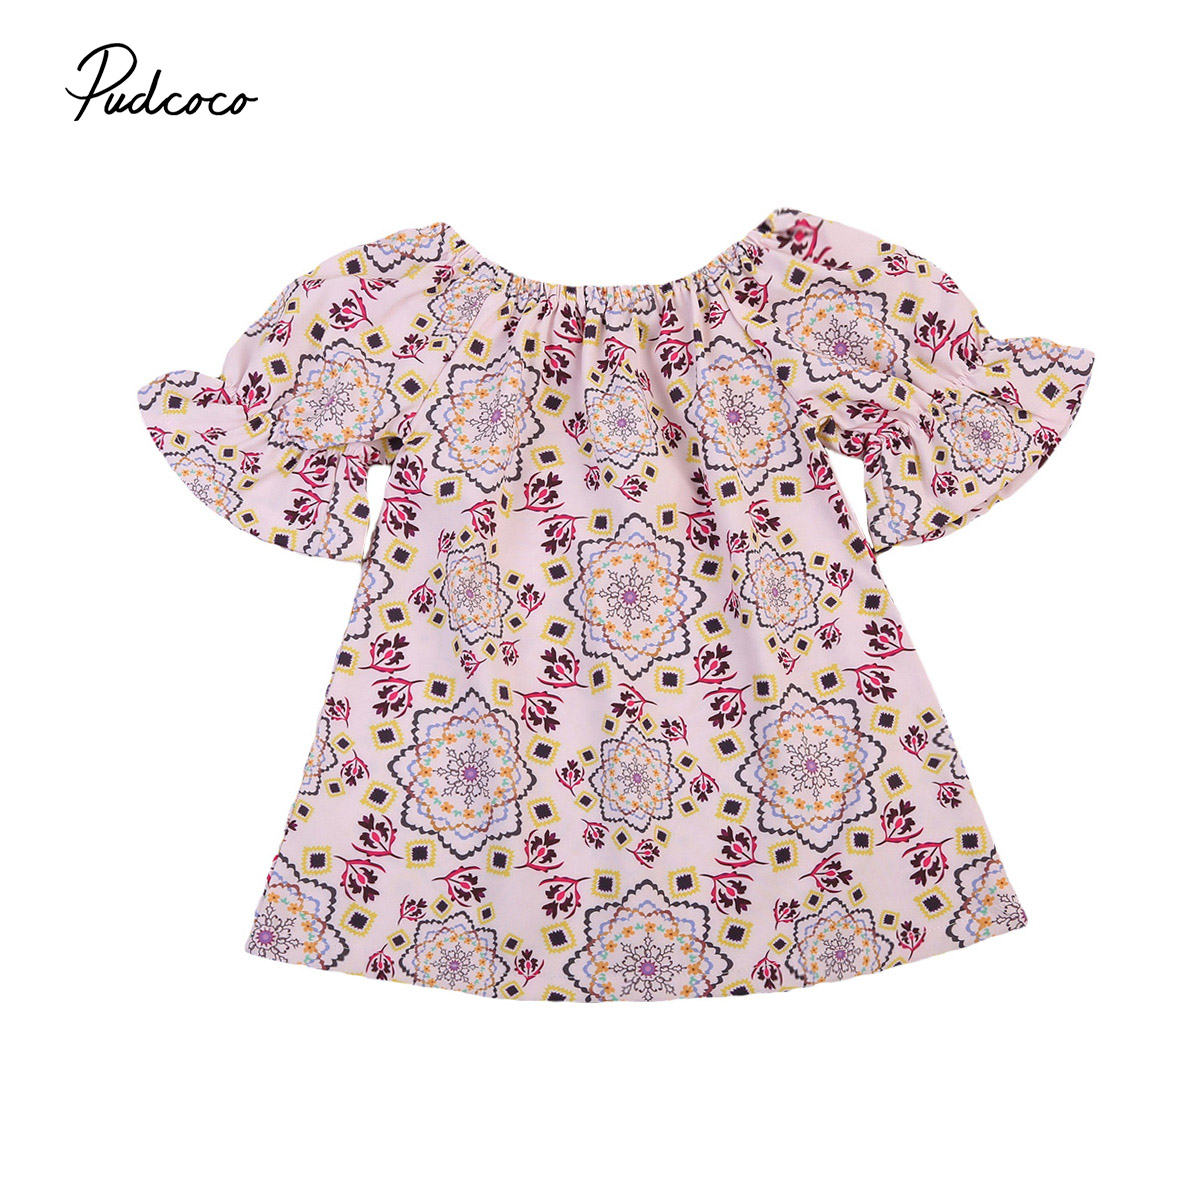 New Toddler Newborn Baby Kids Girls Ruffles Flowers Mini Dress Princess Party Pageant Flare Sleeve Dresses Casual Clothes Summer ems dhl free shipping new v neck baby girls kids sequin dress tulle dress with ruffles 5 colors princess dress casual wear